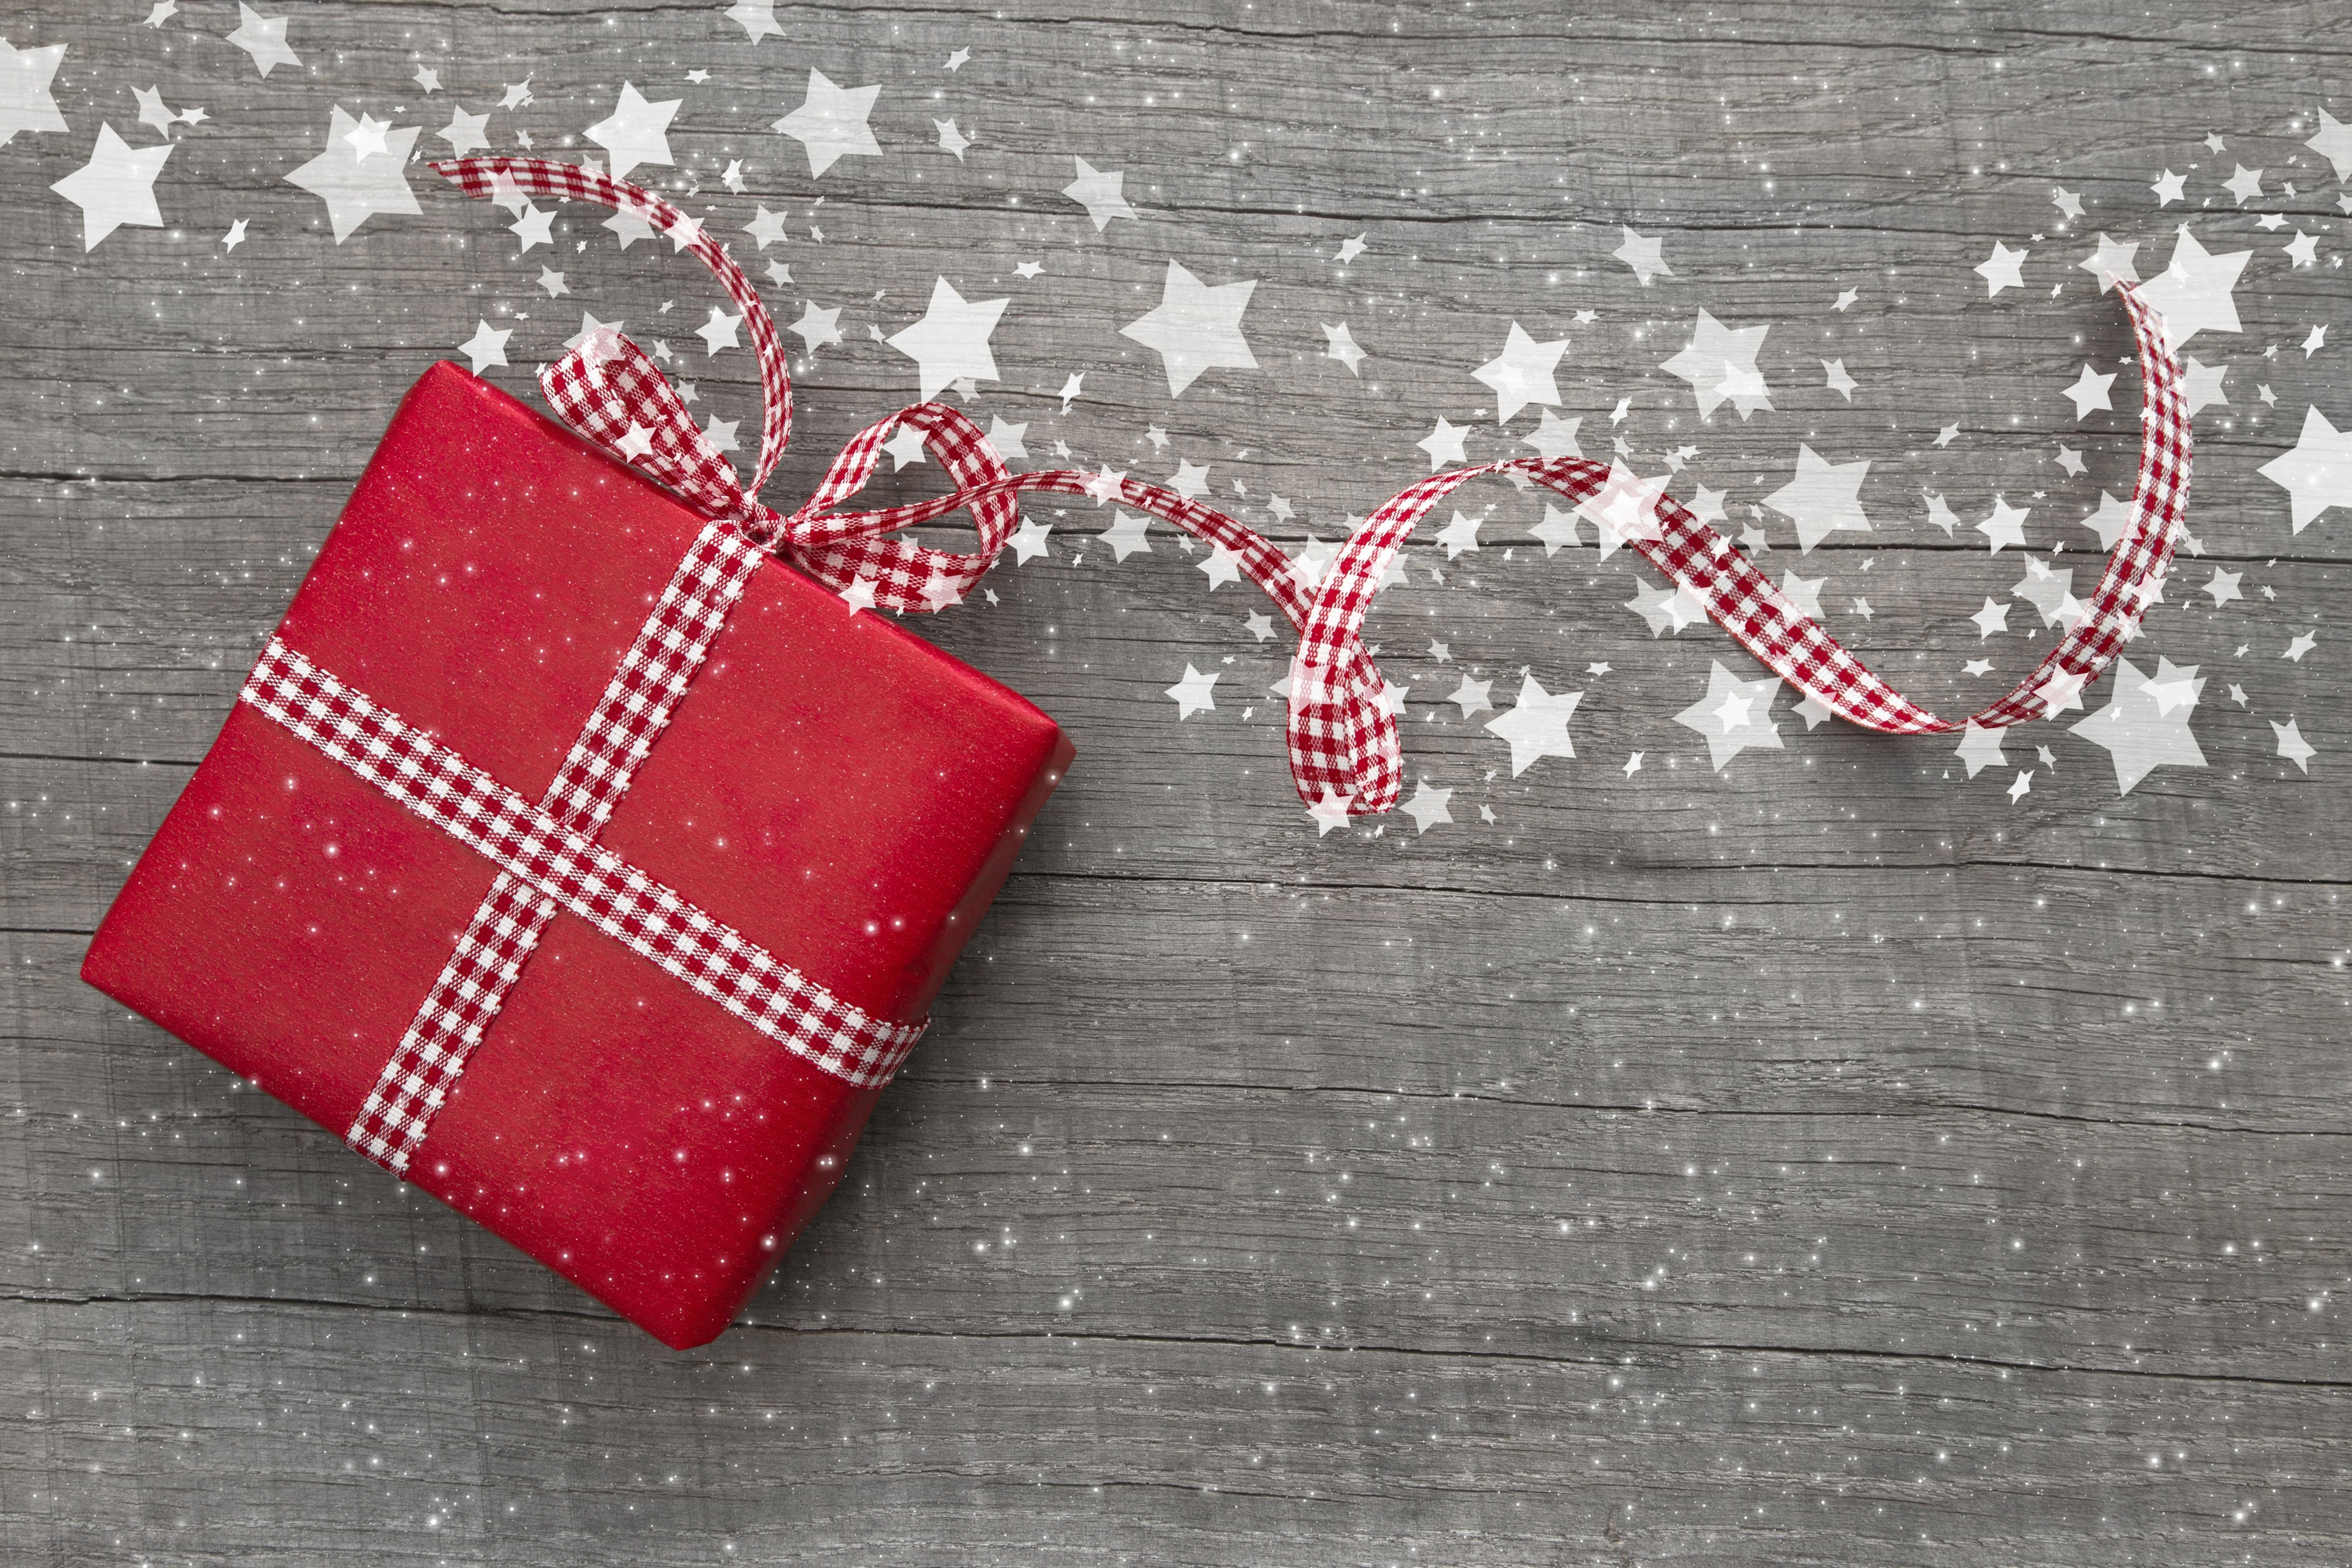 wallpaper christmas  new year  gifts  stars  decorations